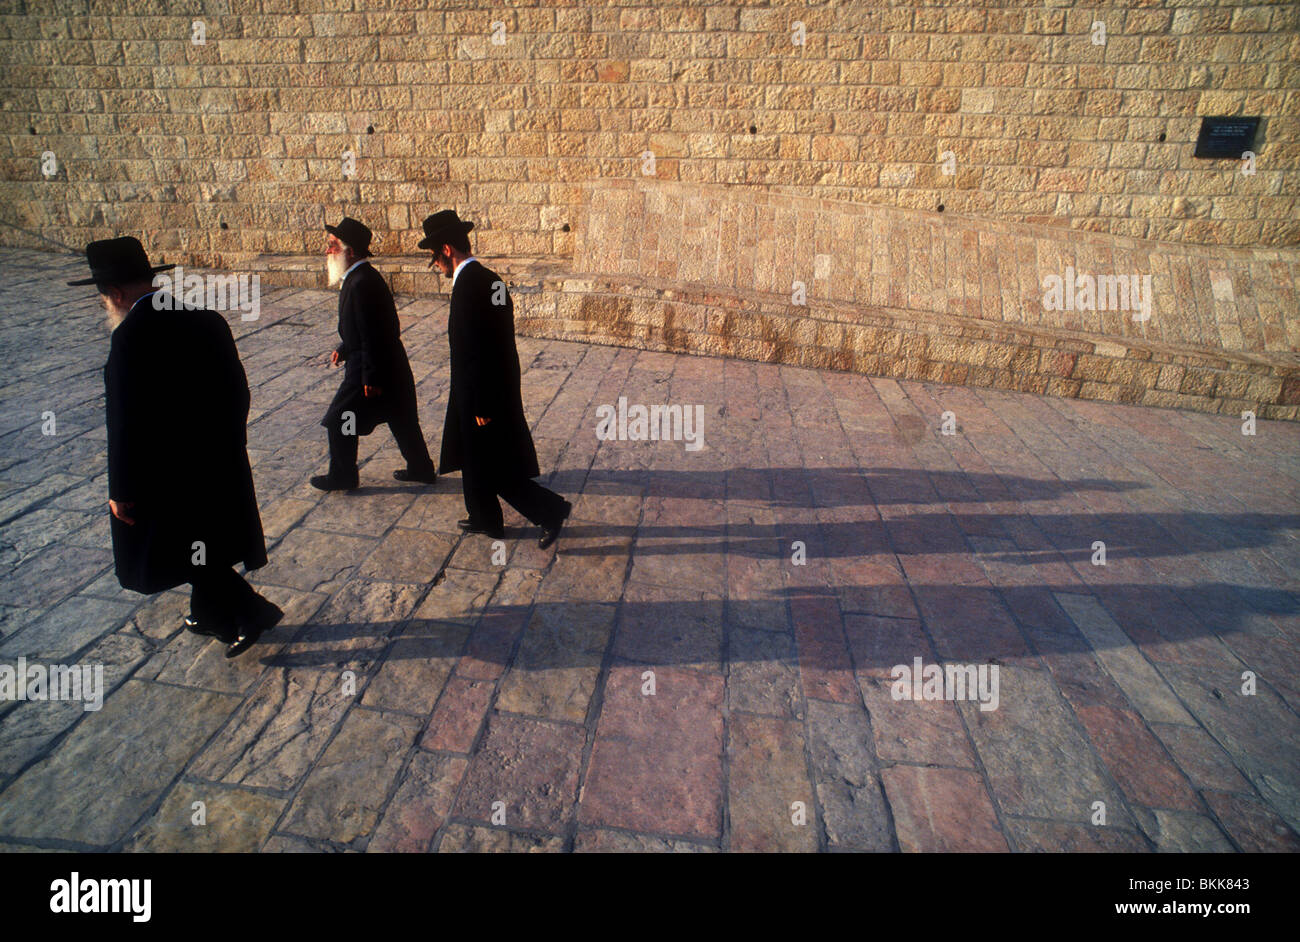 Ascetic Jews (Jews who practice of severe self discipline) at the wall, Jerusalem. - Stock Image